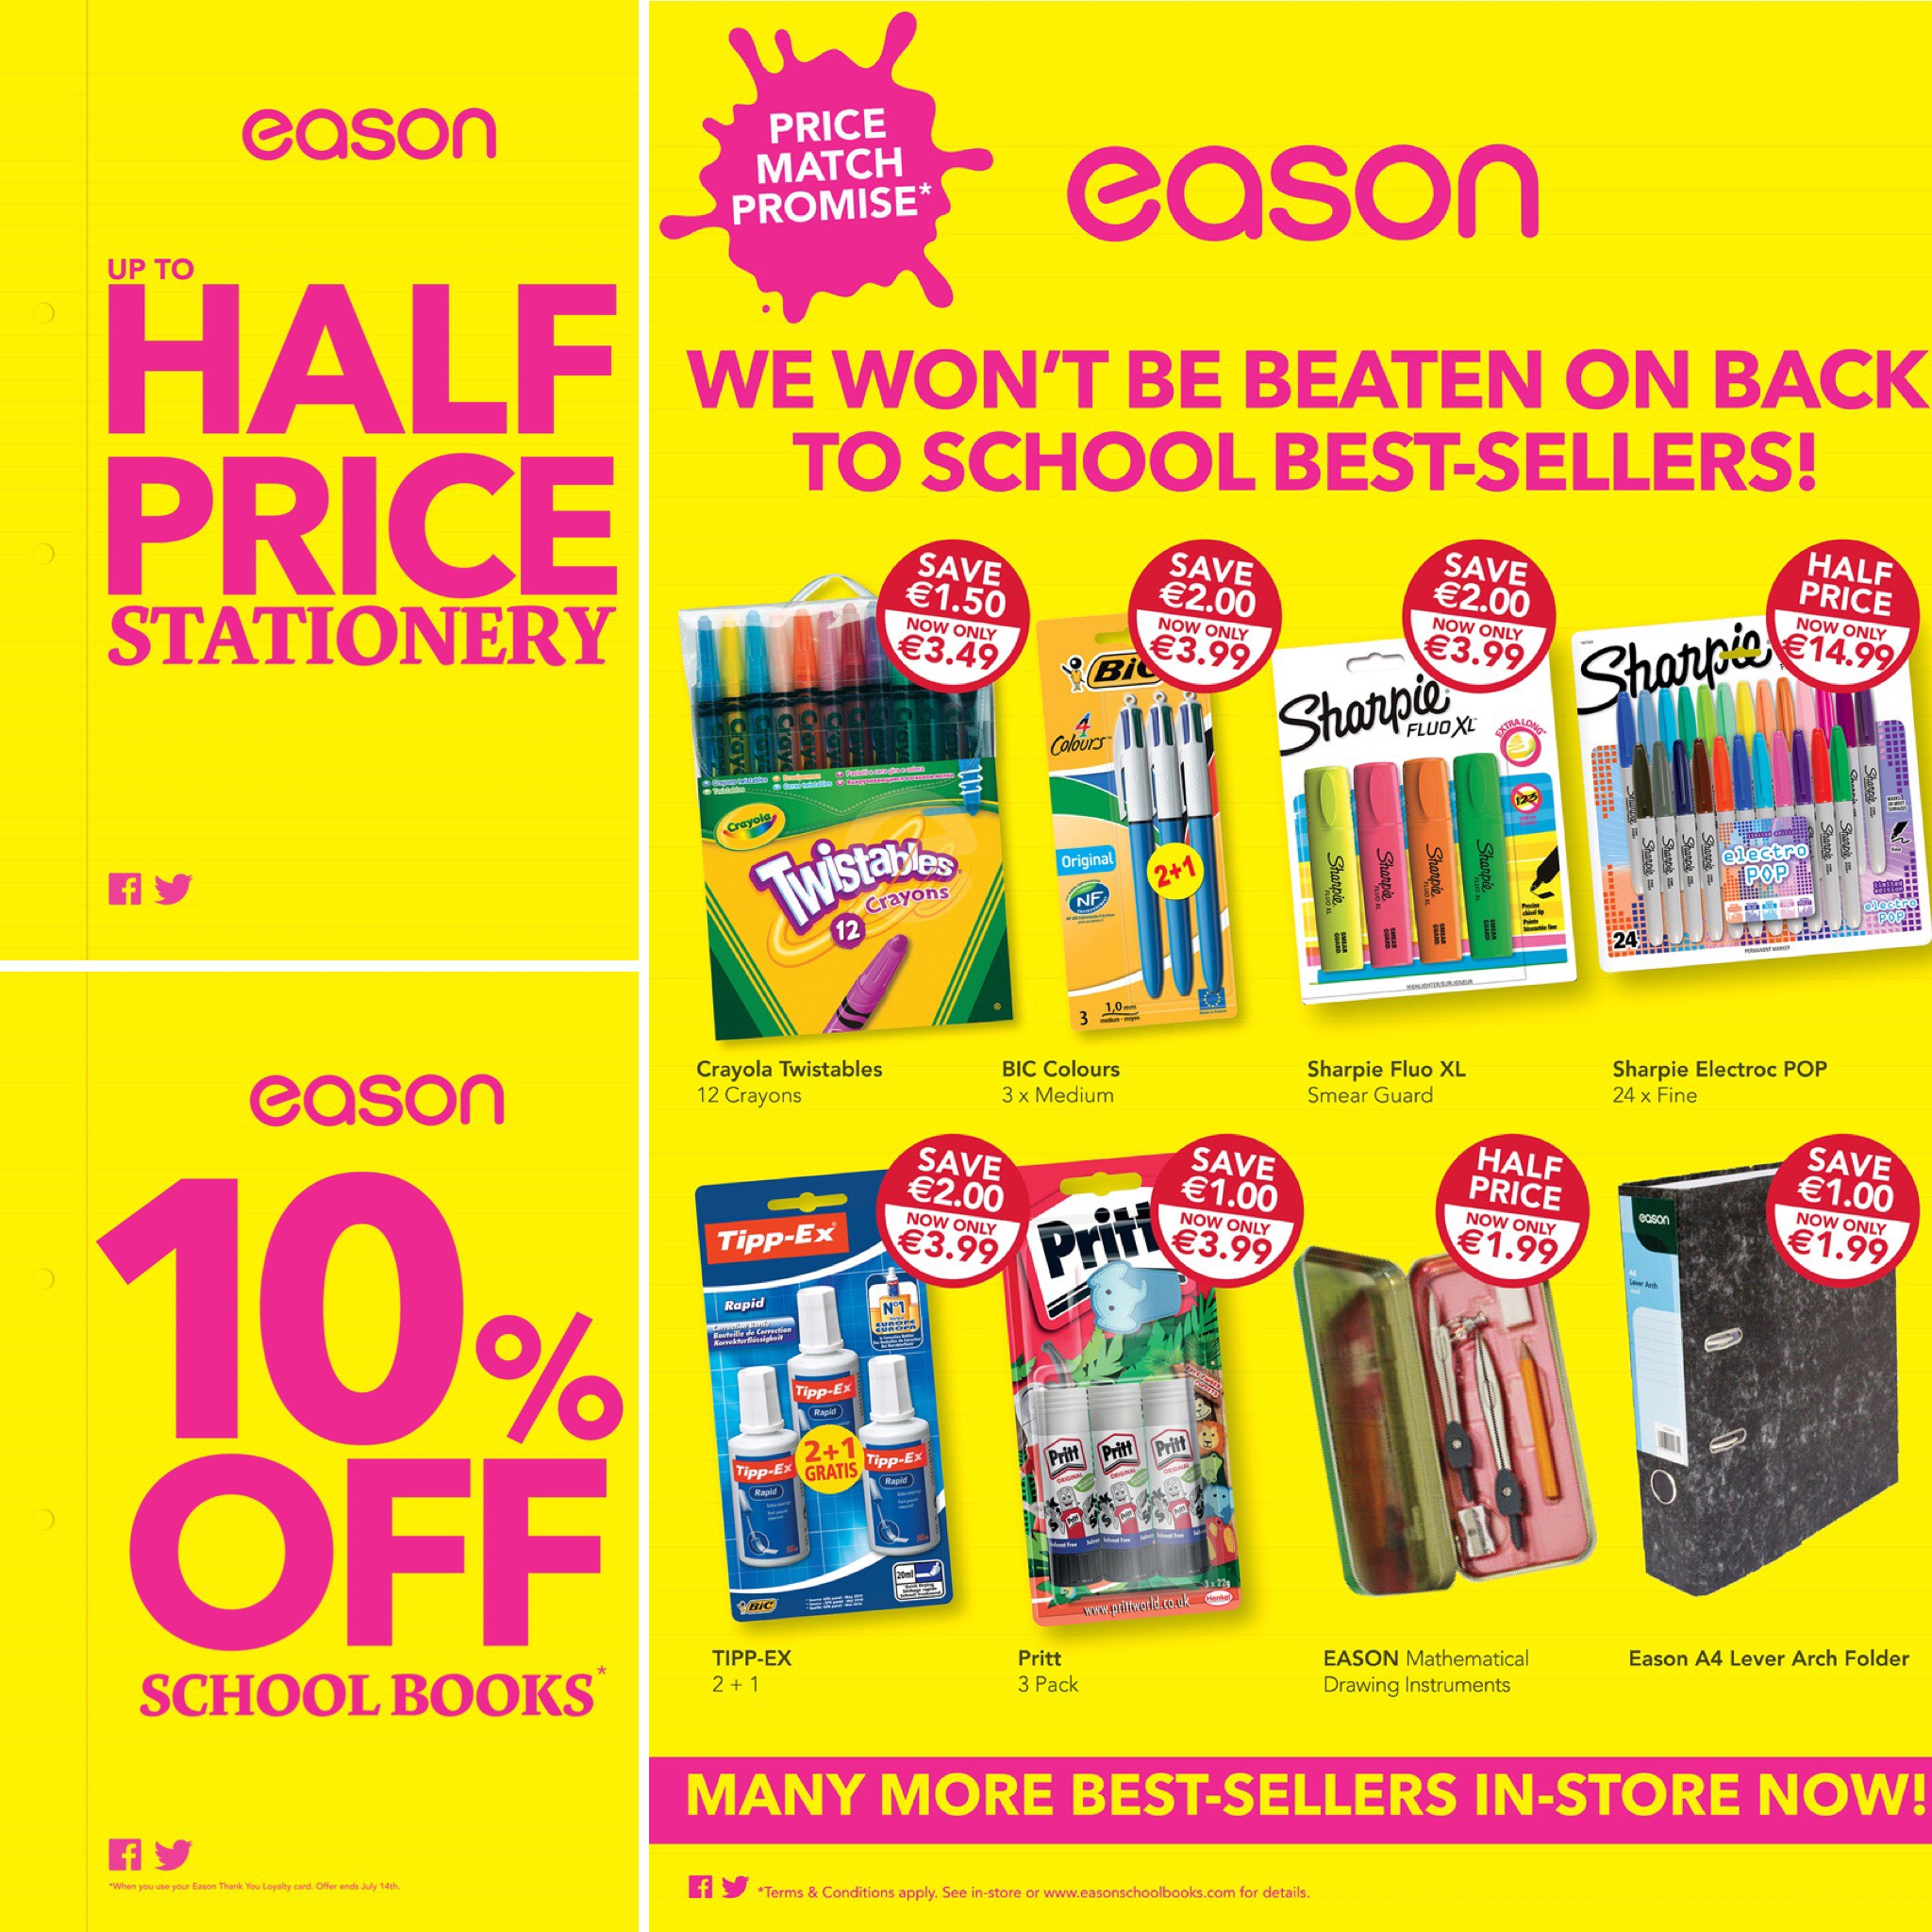 Back to School at Easons